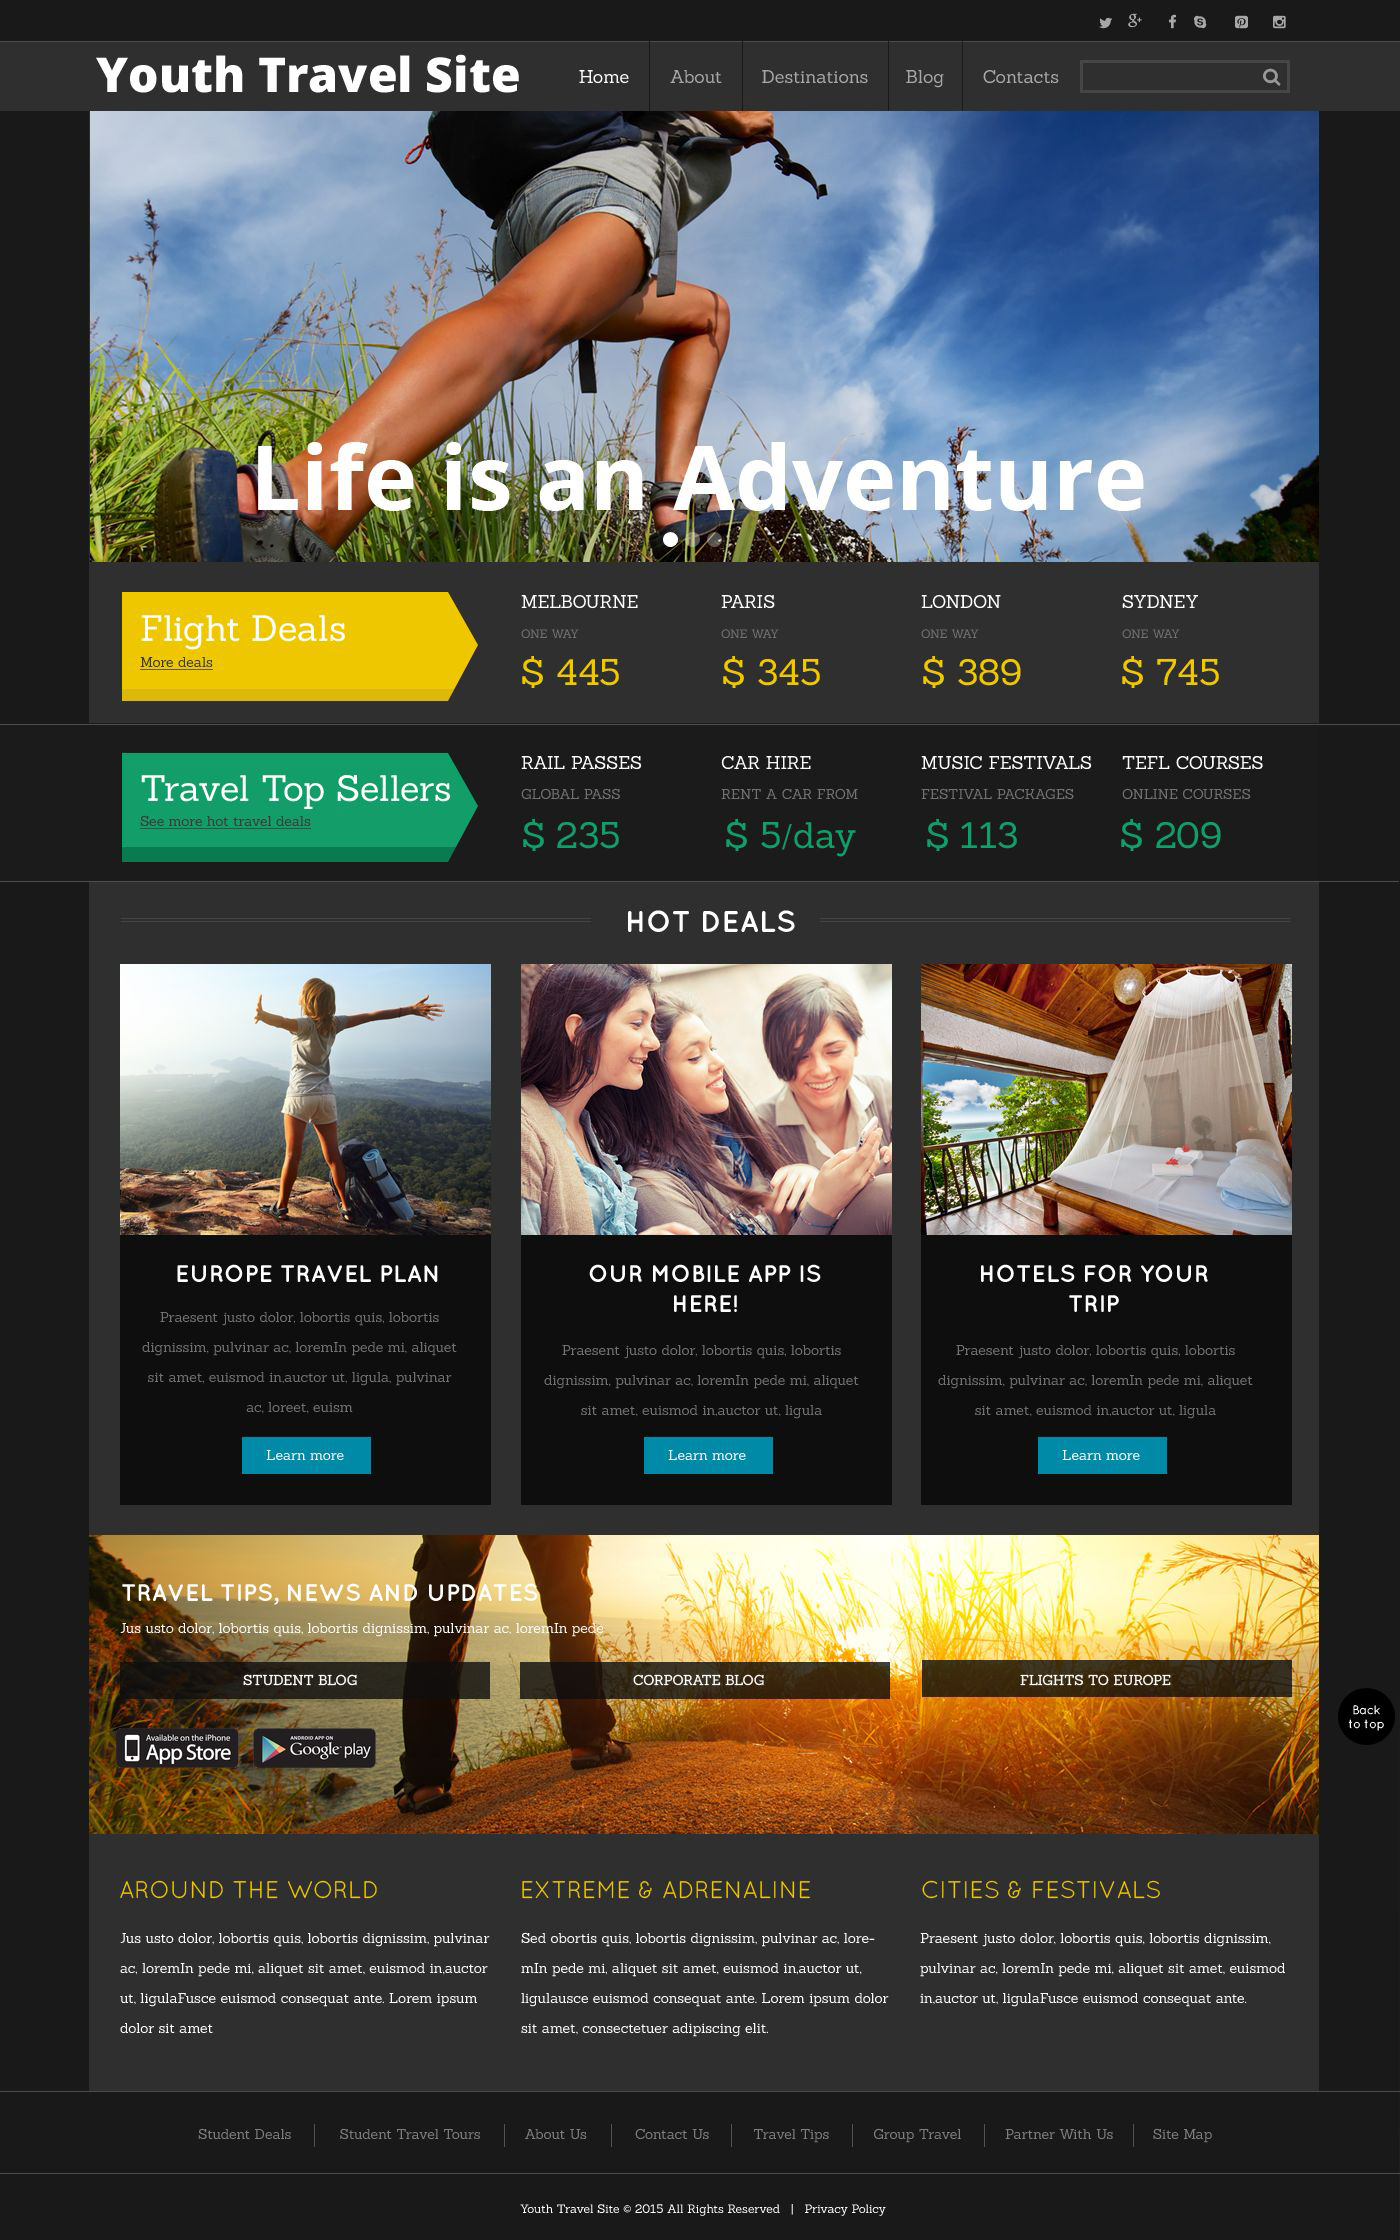 The Youth Travel Site Travel Agency Bootstrap Design 53003, one of the best website templates of its kind (travel, most popular), also known as Youth Travel site travel agency website template, compass website template, tour country website template, resort website template, spa website template, flight hotel website template, car website template, rental website template, cruise website template, sights website template, reservation website template, location website template, authorization website template, ticket website template, guide website template, beach website template, sea website template, relaxation website template, recreation website template, impression website template, air website template, liner website template, traveling website template, apartment website template, vacation website template, rest website template, comfort website template, destination website template, explor and related with Youth Travel site travel agency, compass, tour country, resort, spa, flight hotel, car, rental, cruise, sights, reservation, location, authorization, ticket, guide, beach, sea, relaxation, recreation, impression, air, liner, traveling, apartment, vacation, rest, comfort, destination, explor, etc.